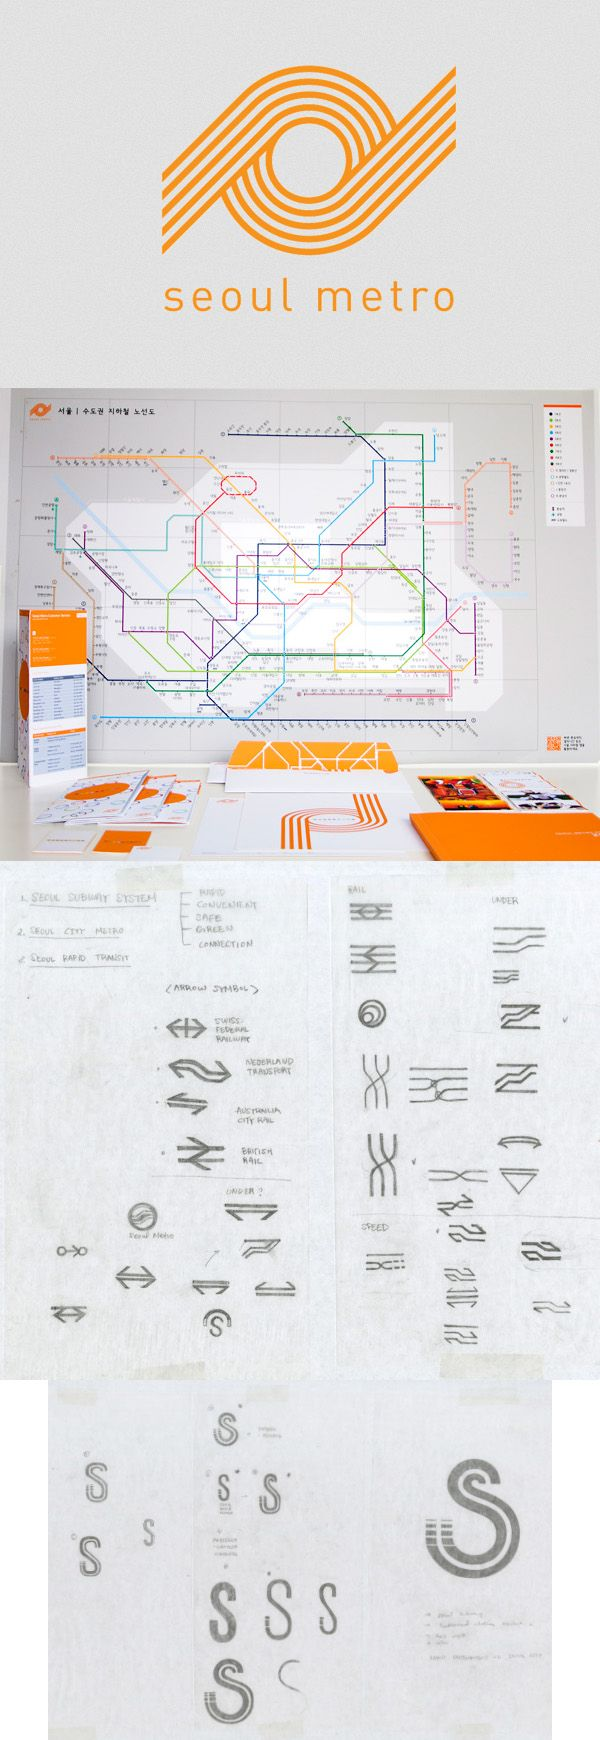 rebranding the subway system as a symbolic public transportation system which communion with the city http://www.behance.net/ohsi